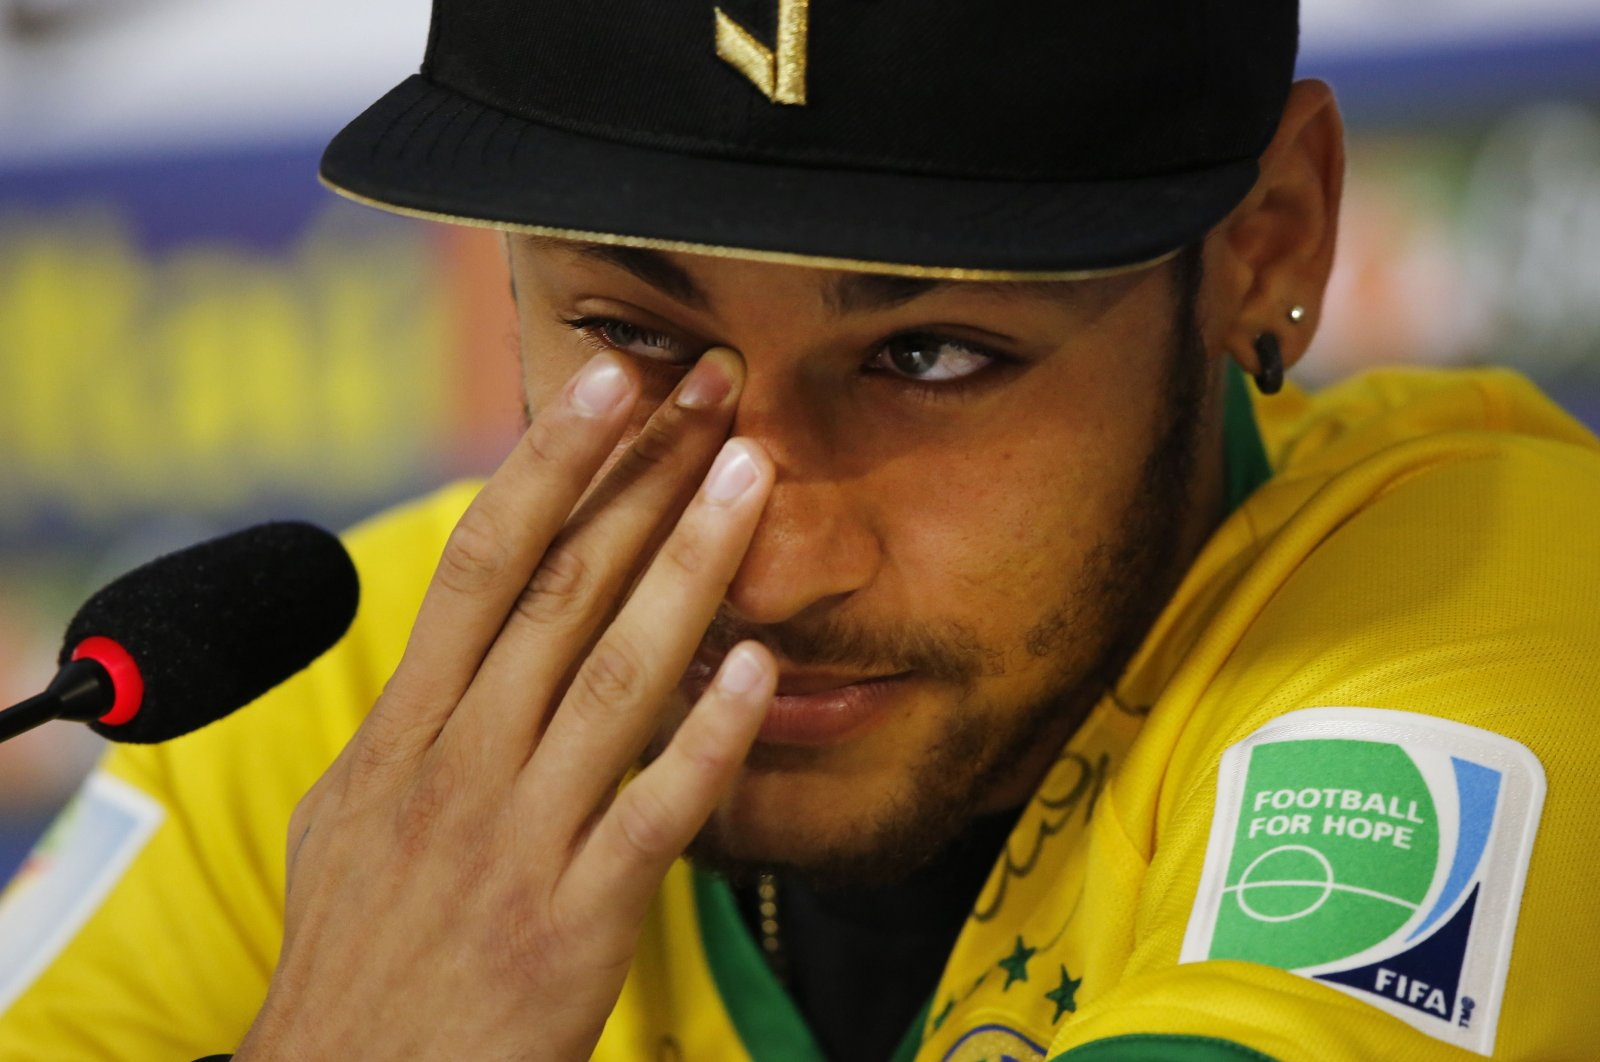 Then-injured Brazilian national football team player Neymar Jr. cries during a news conference in Teresopolis, near Rio de Janeiro, Brazil, July 10, 2014. (AP Photo)